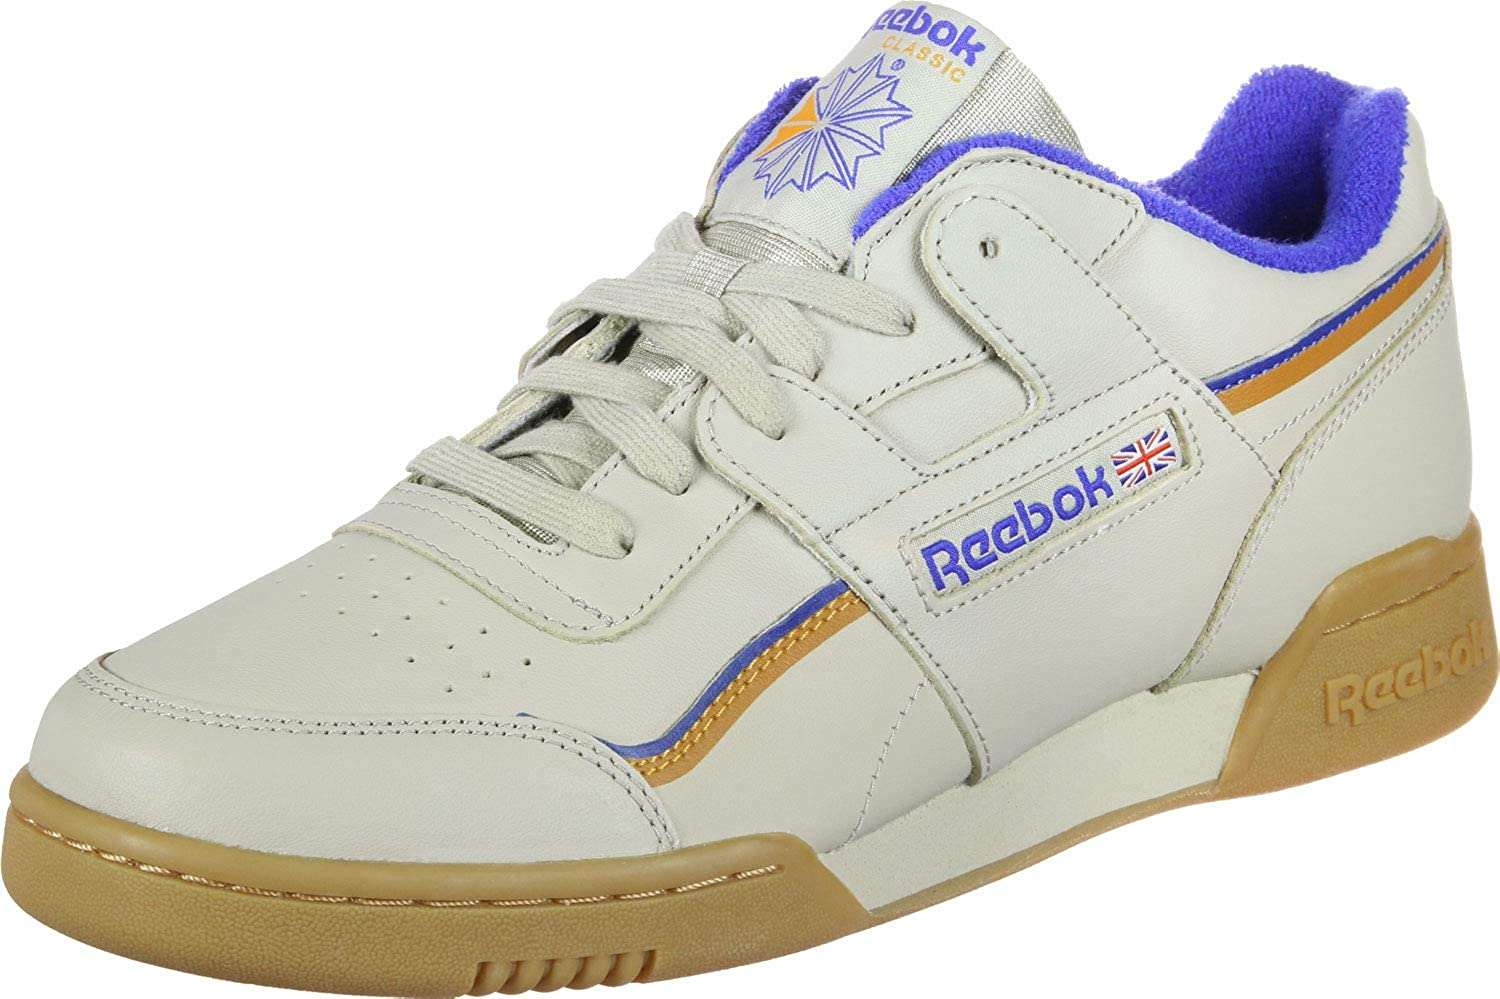 Reebok Workout Plus Schuhe Schuhe Schuhe  335c68